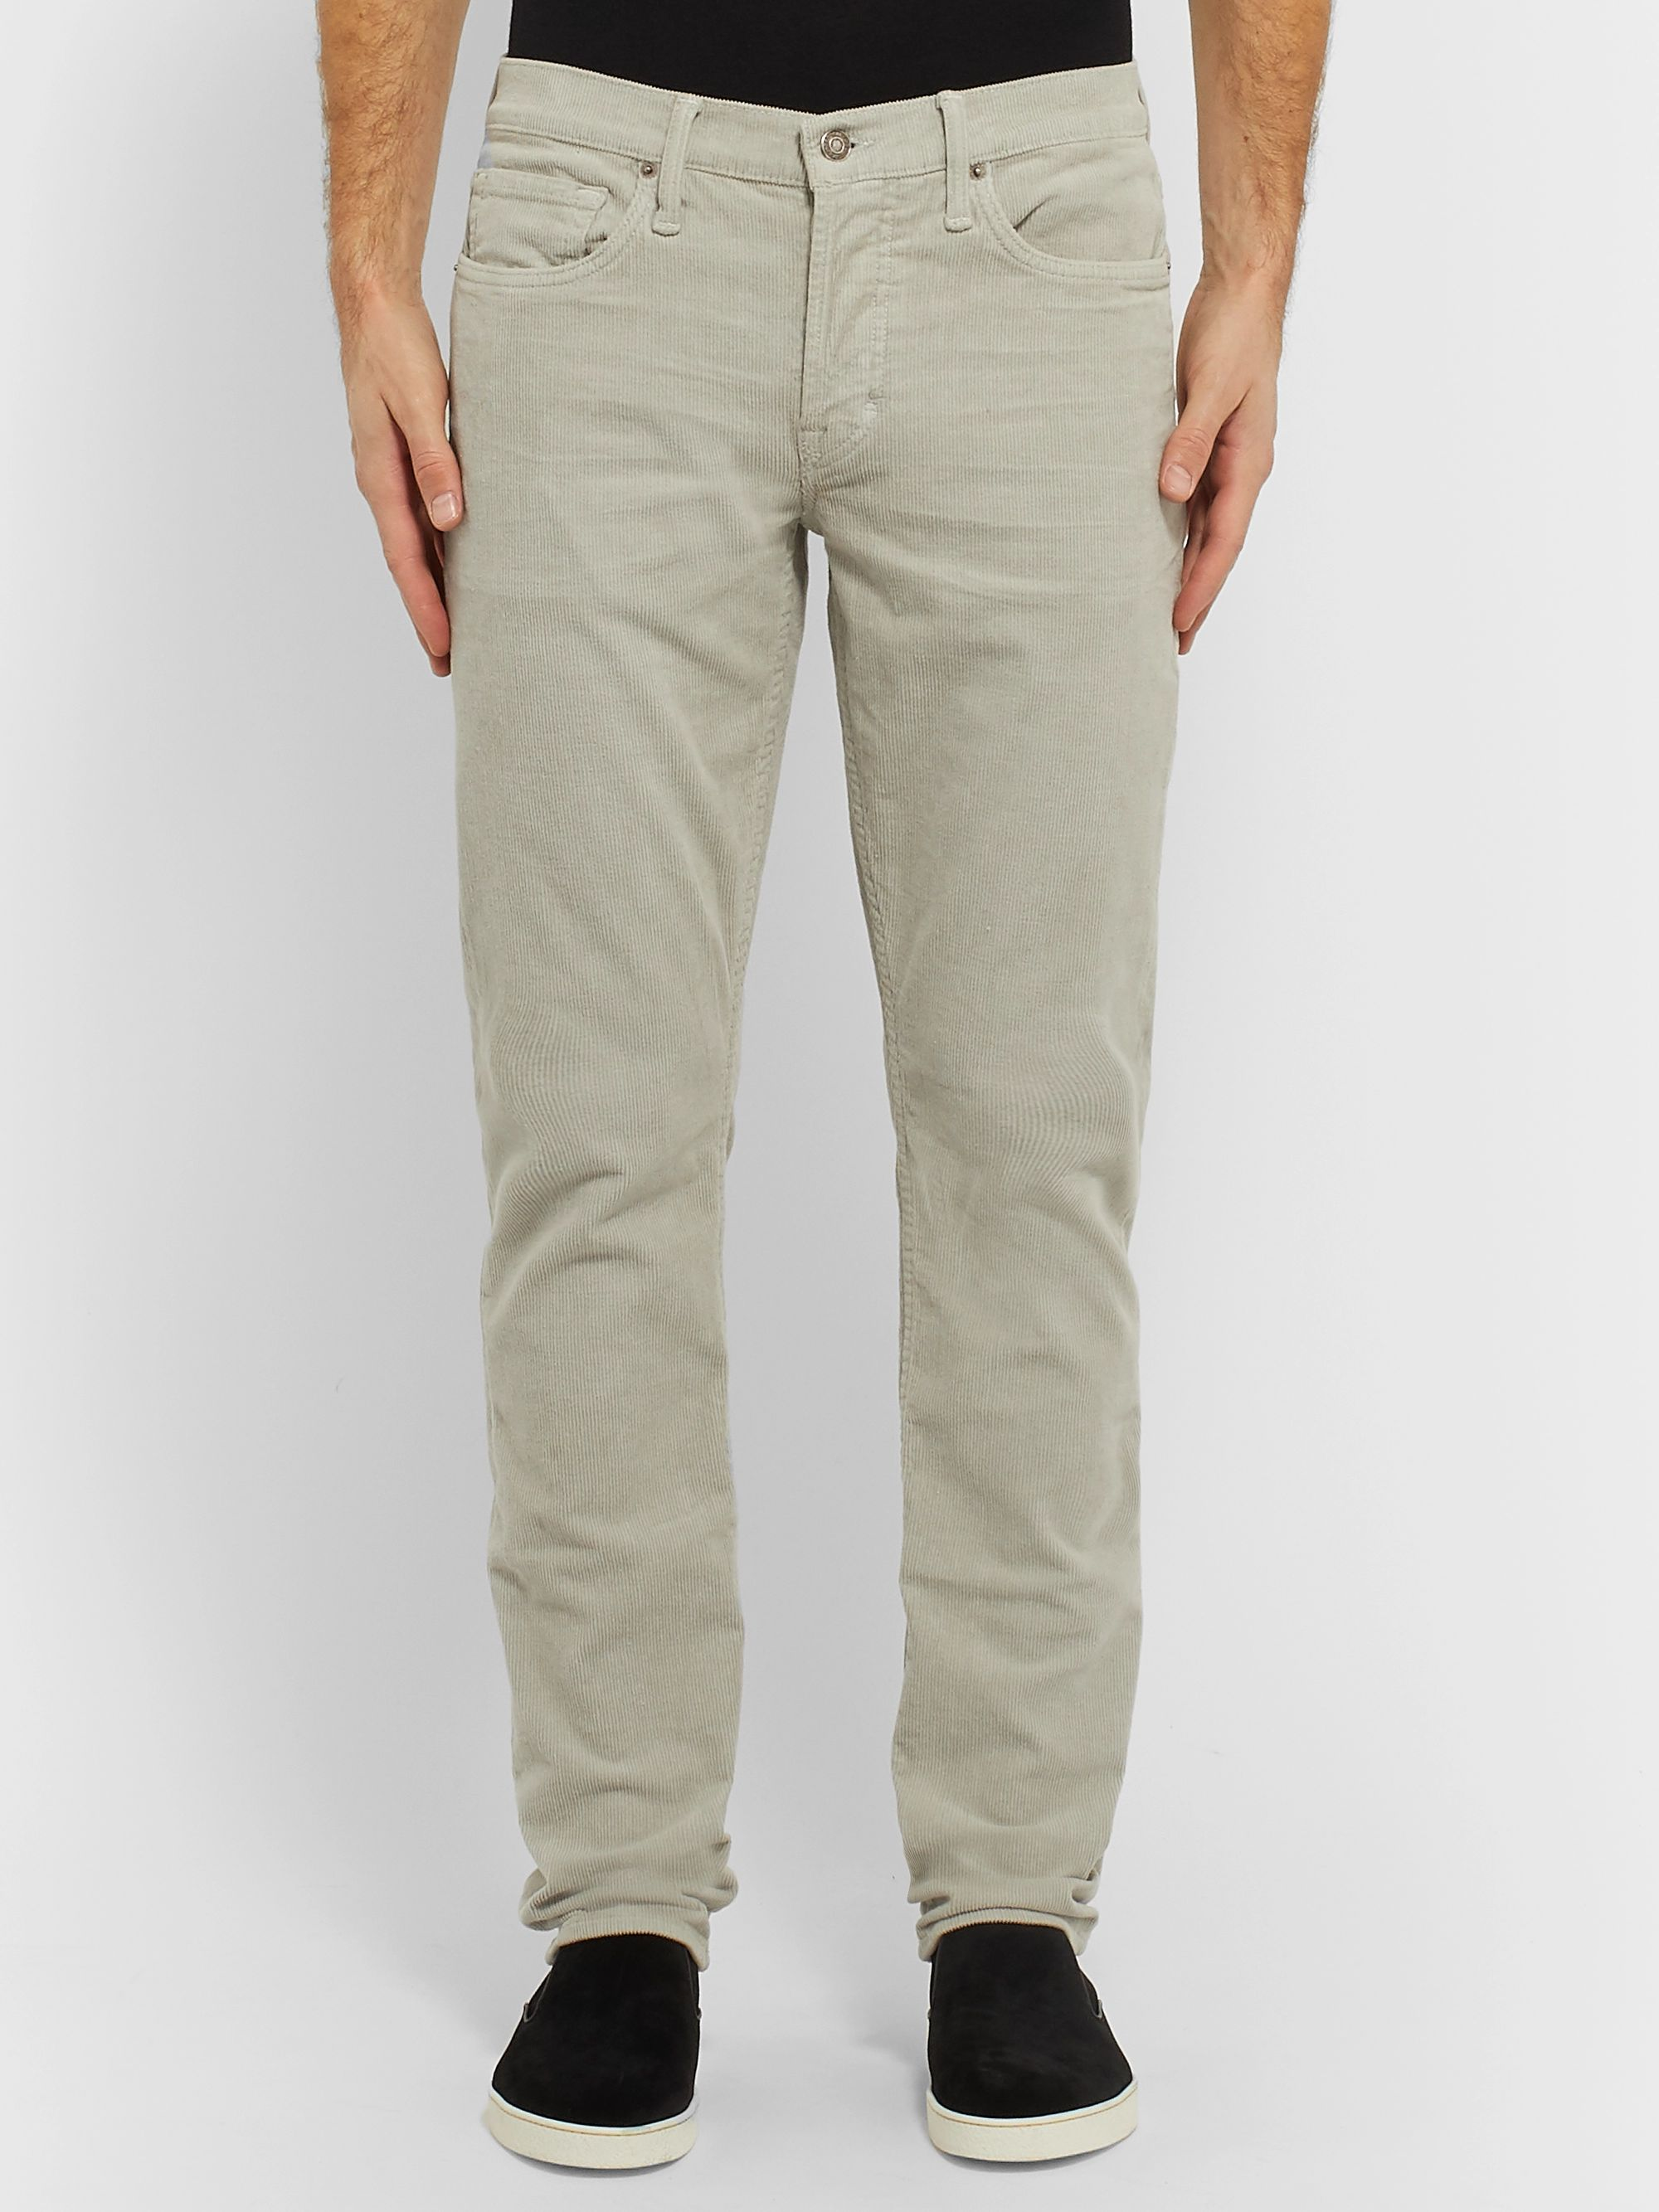 TOM FORD Navy Slim-Fit Cotton-Blend Corduroy Trousers